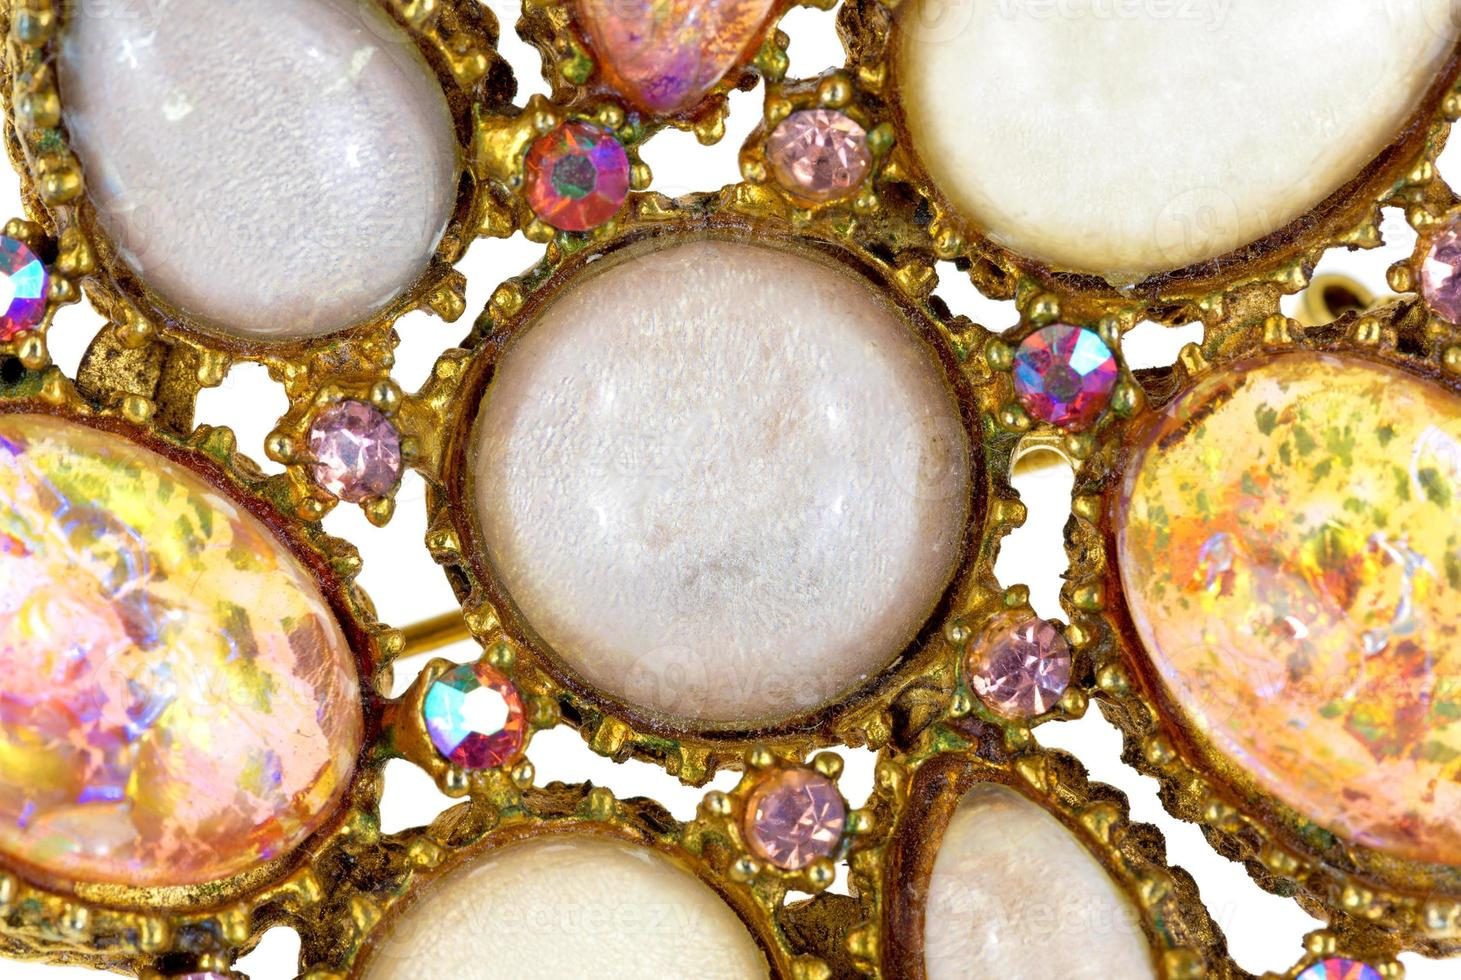 Close view of an antique brooch photo